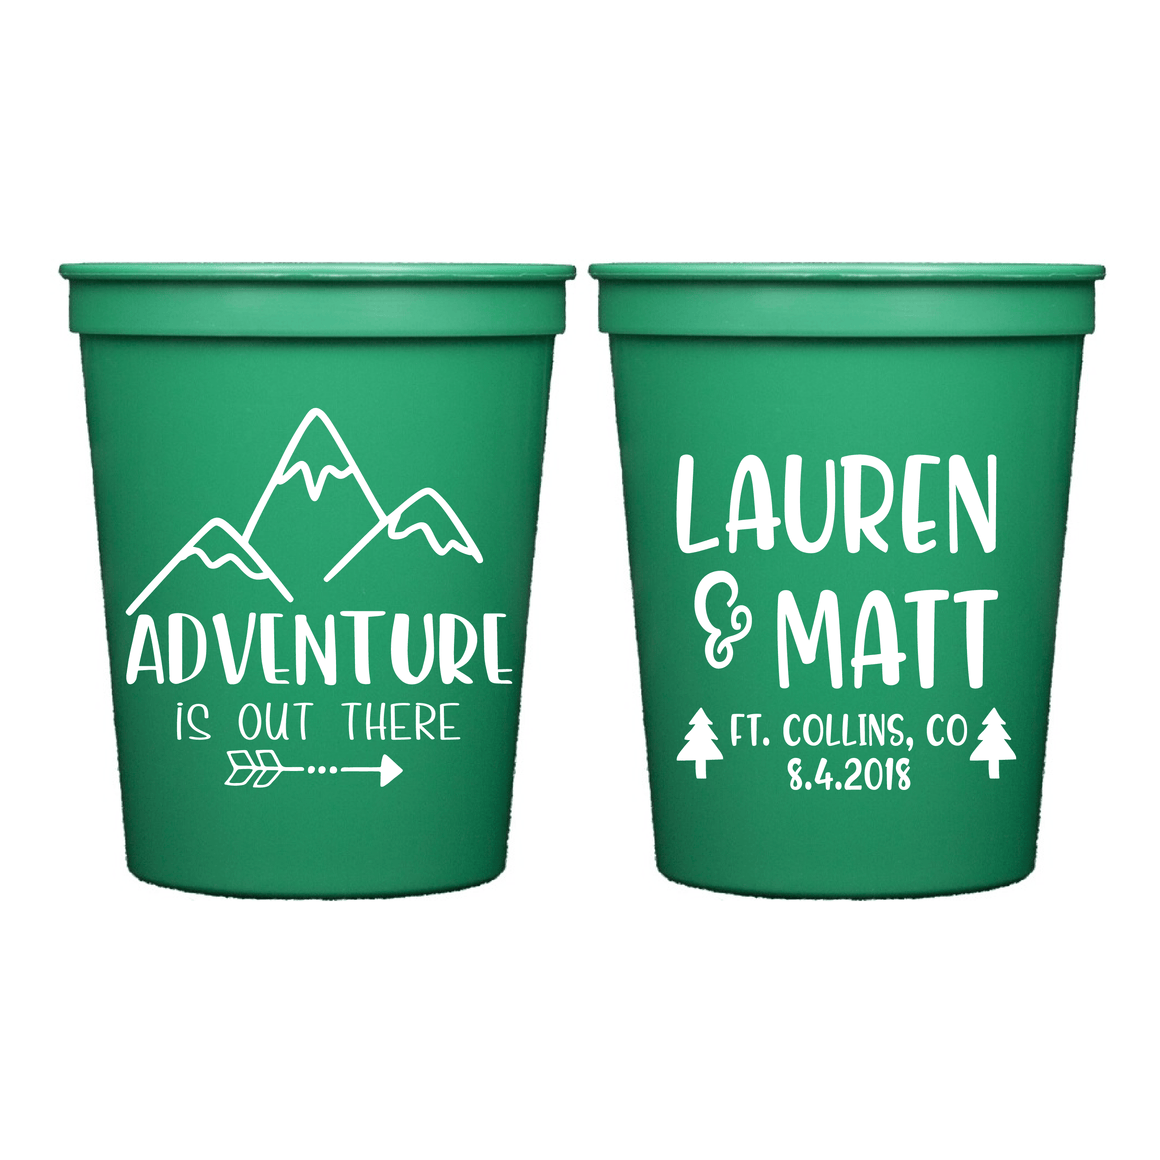 Stadium Cups - Adventure Is Out There Personalized Wedding Stadium Cups